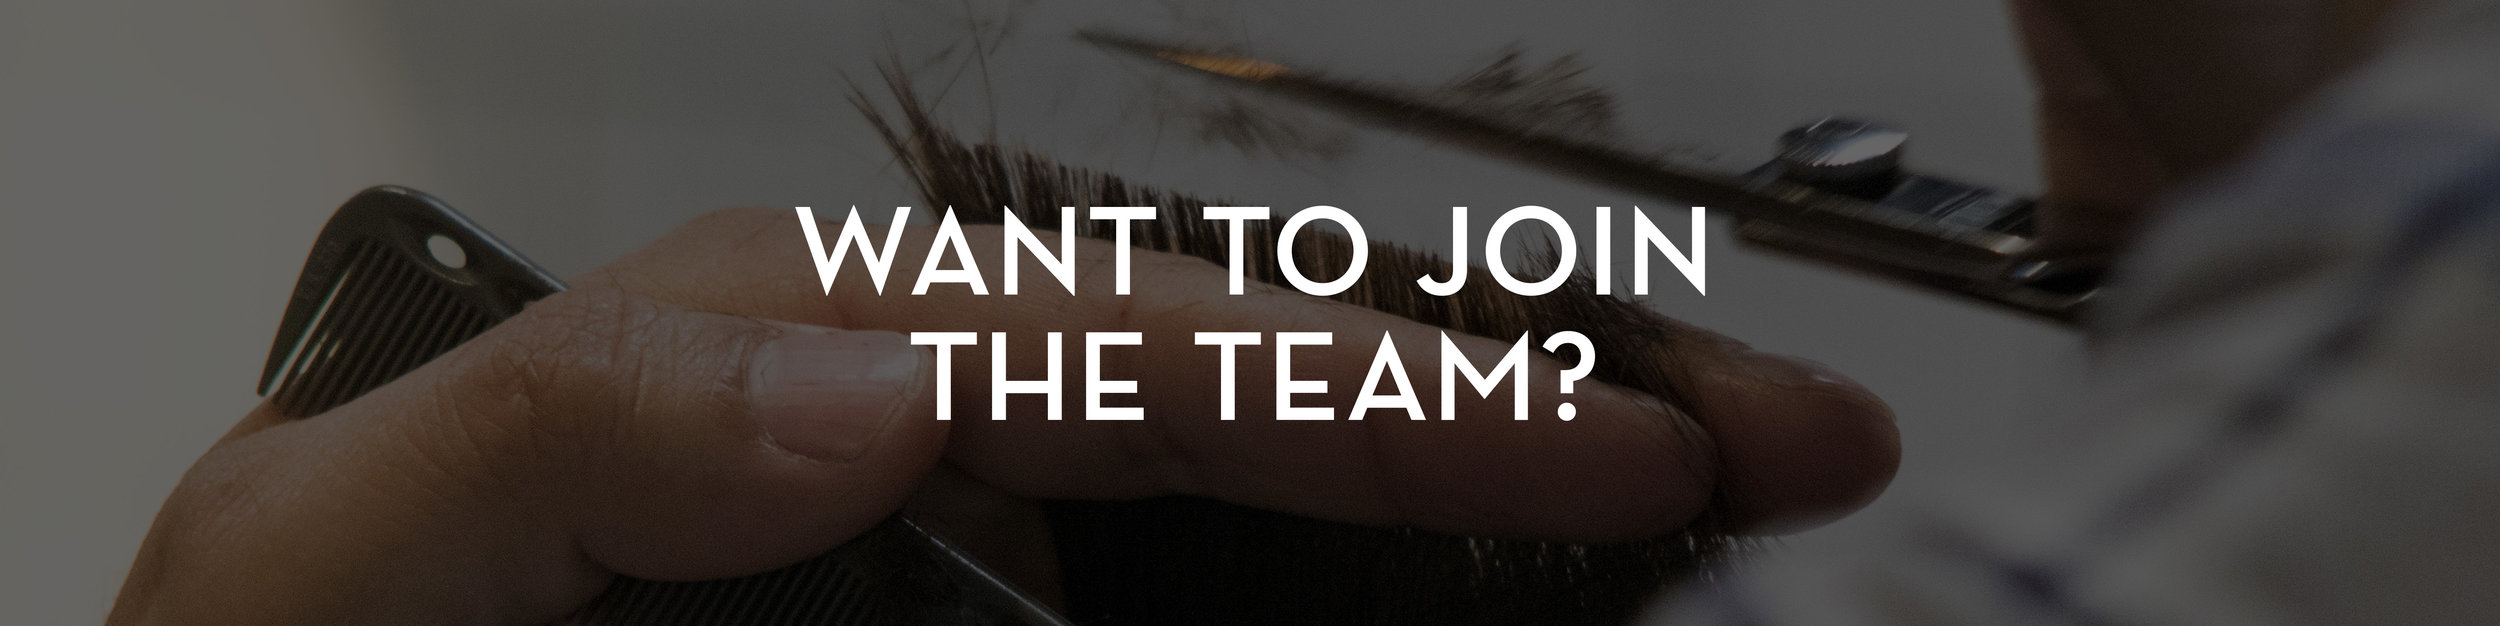 join the team cover wide.jpg